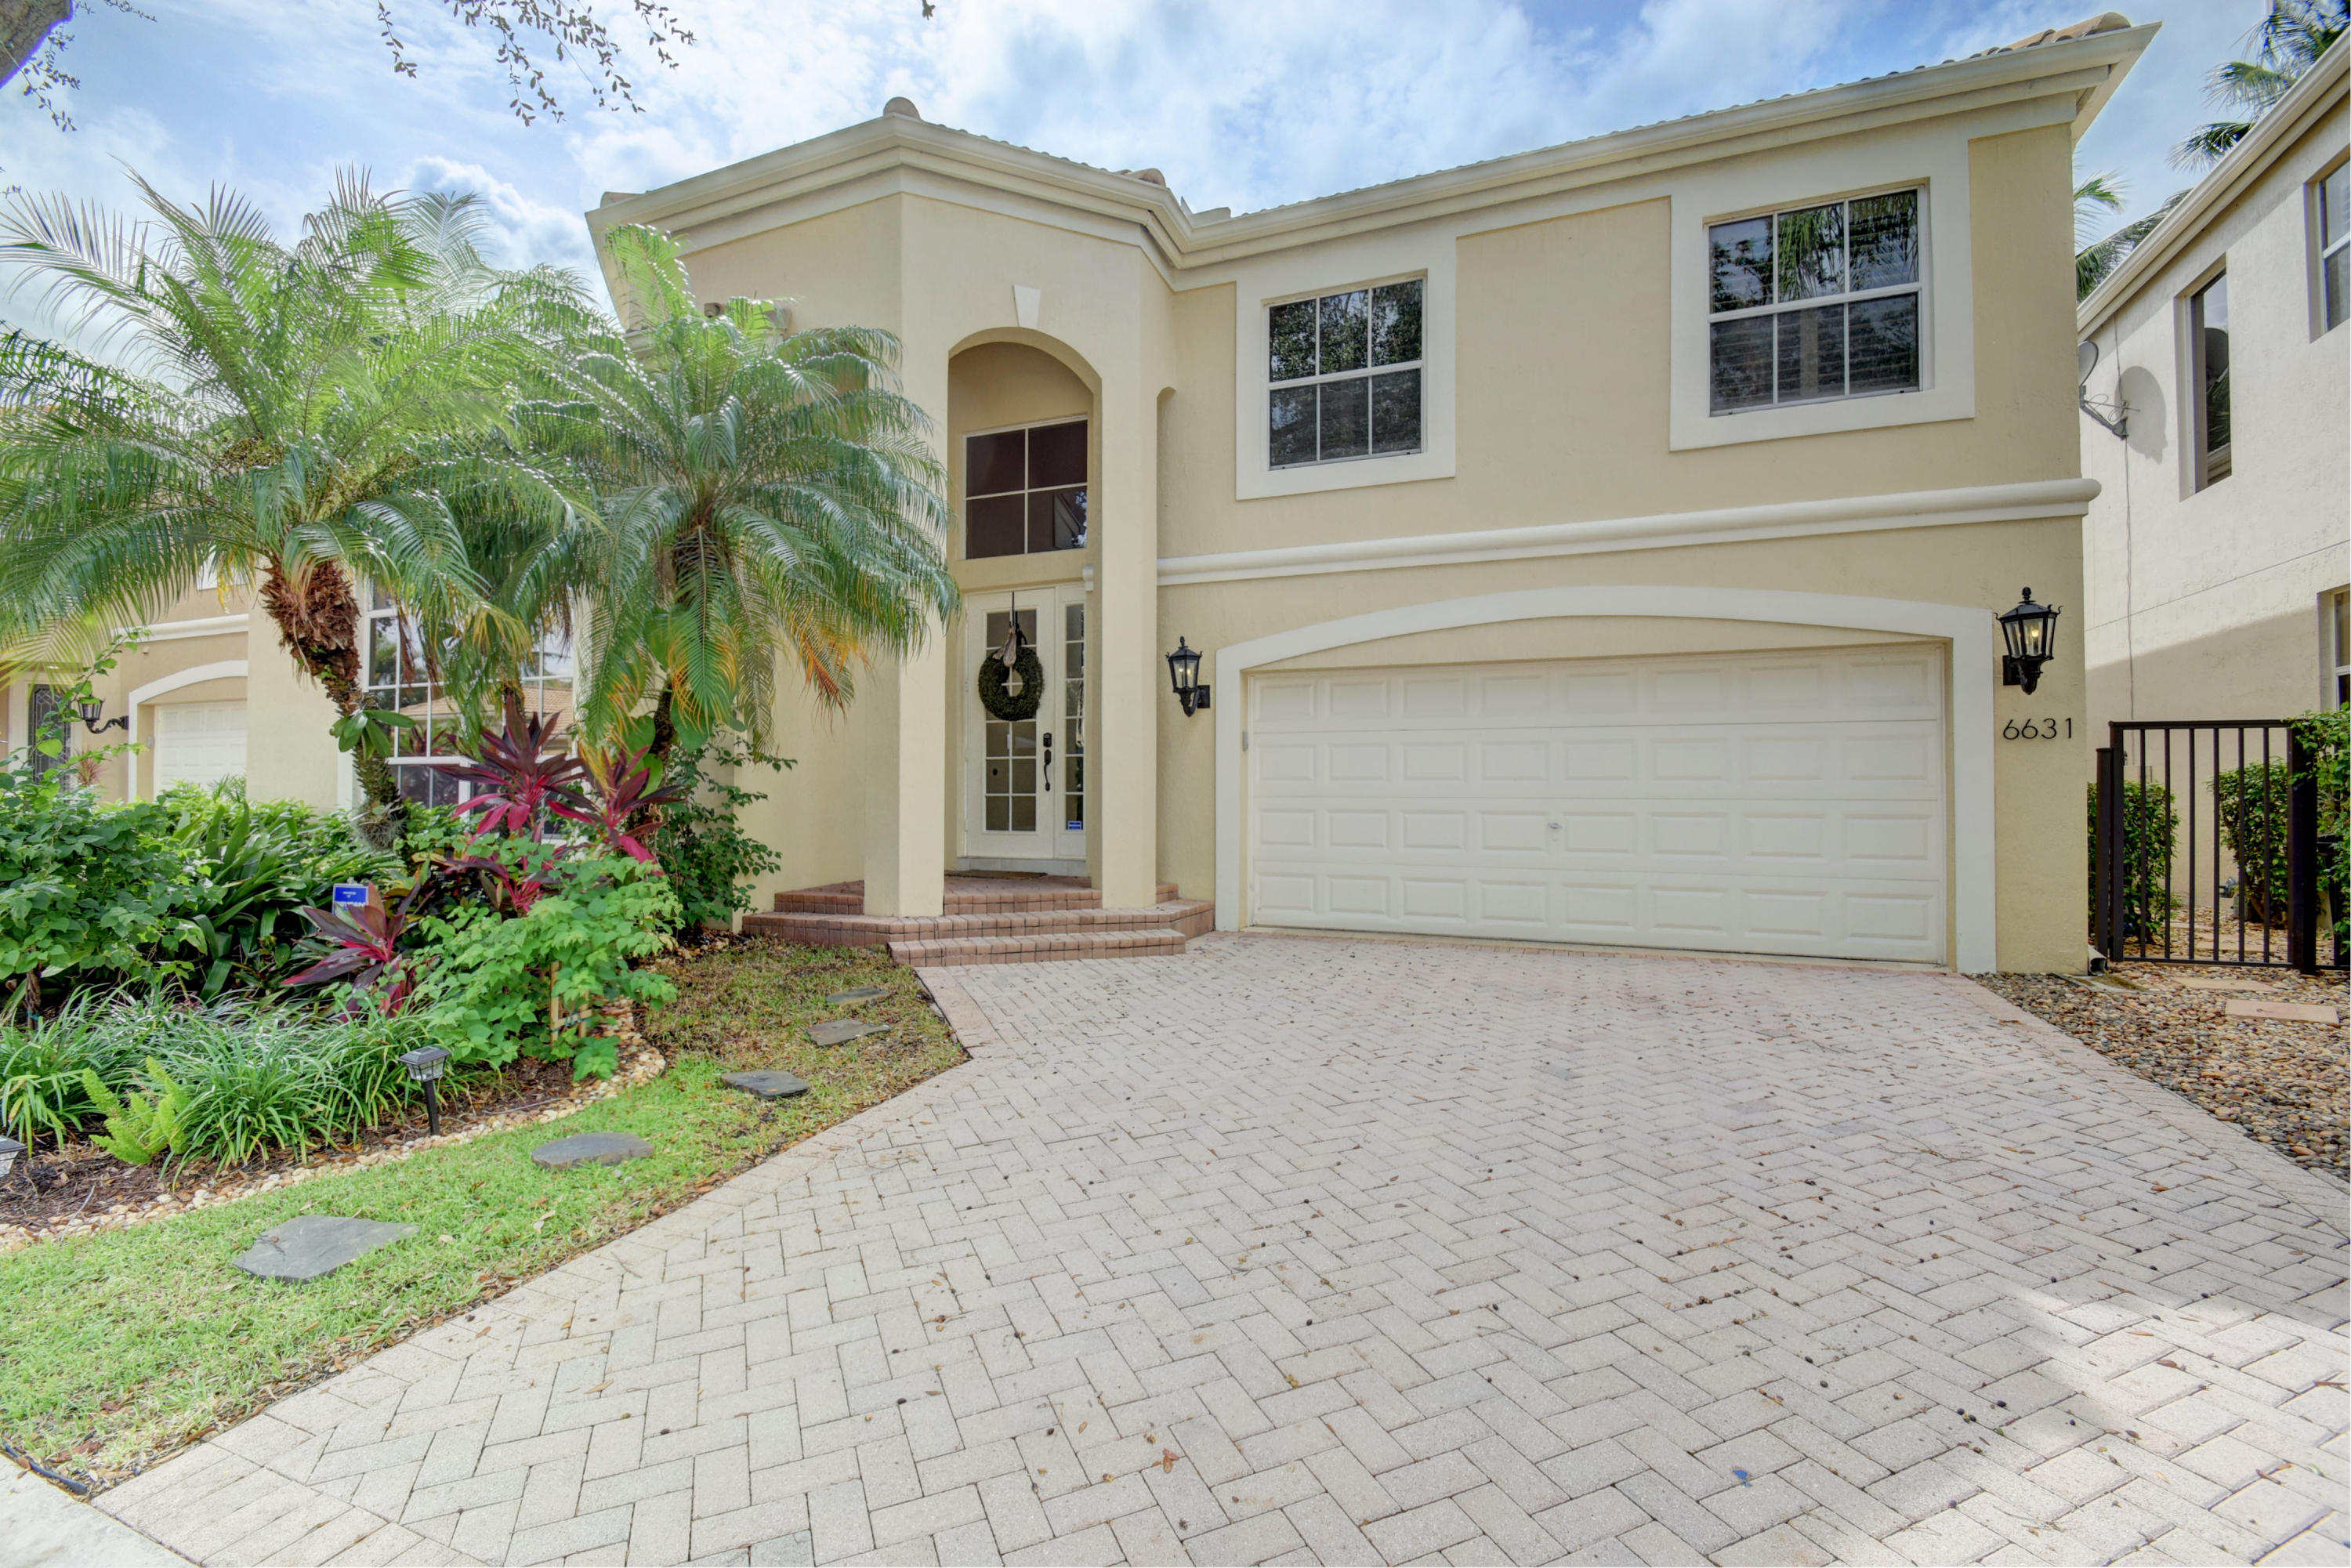 Details for 6631 43rd Terrace Nw, Boca Raton, FL 33496